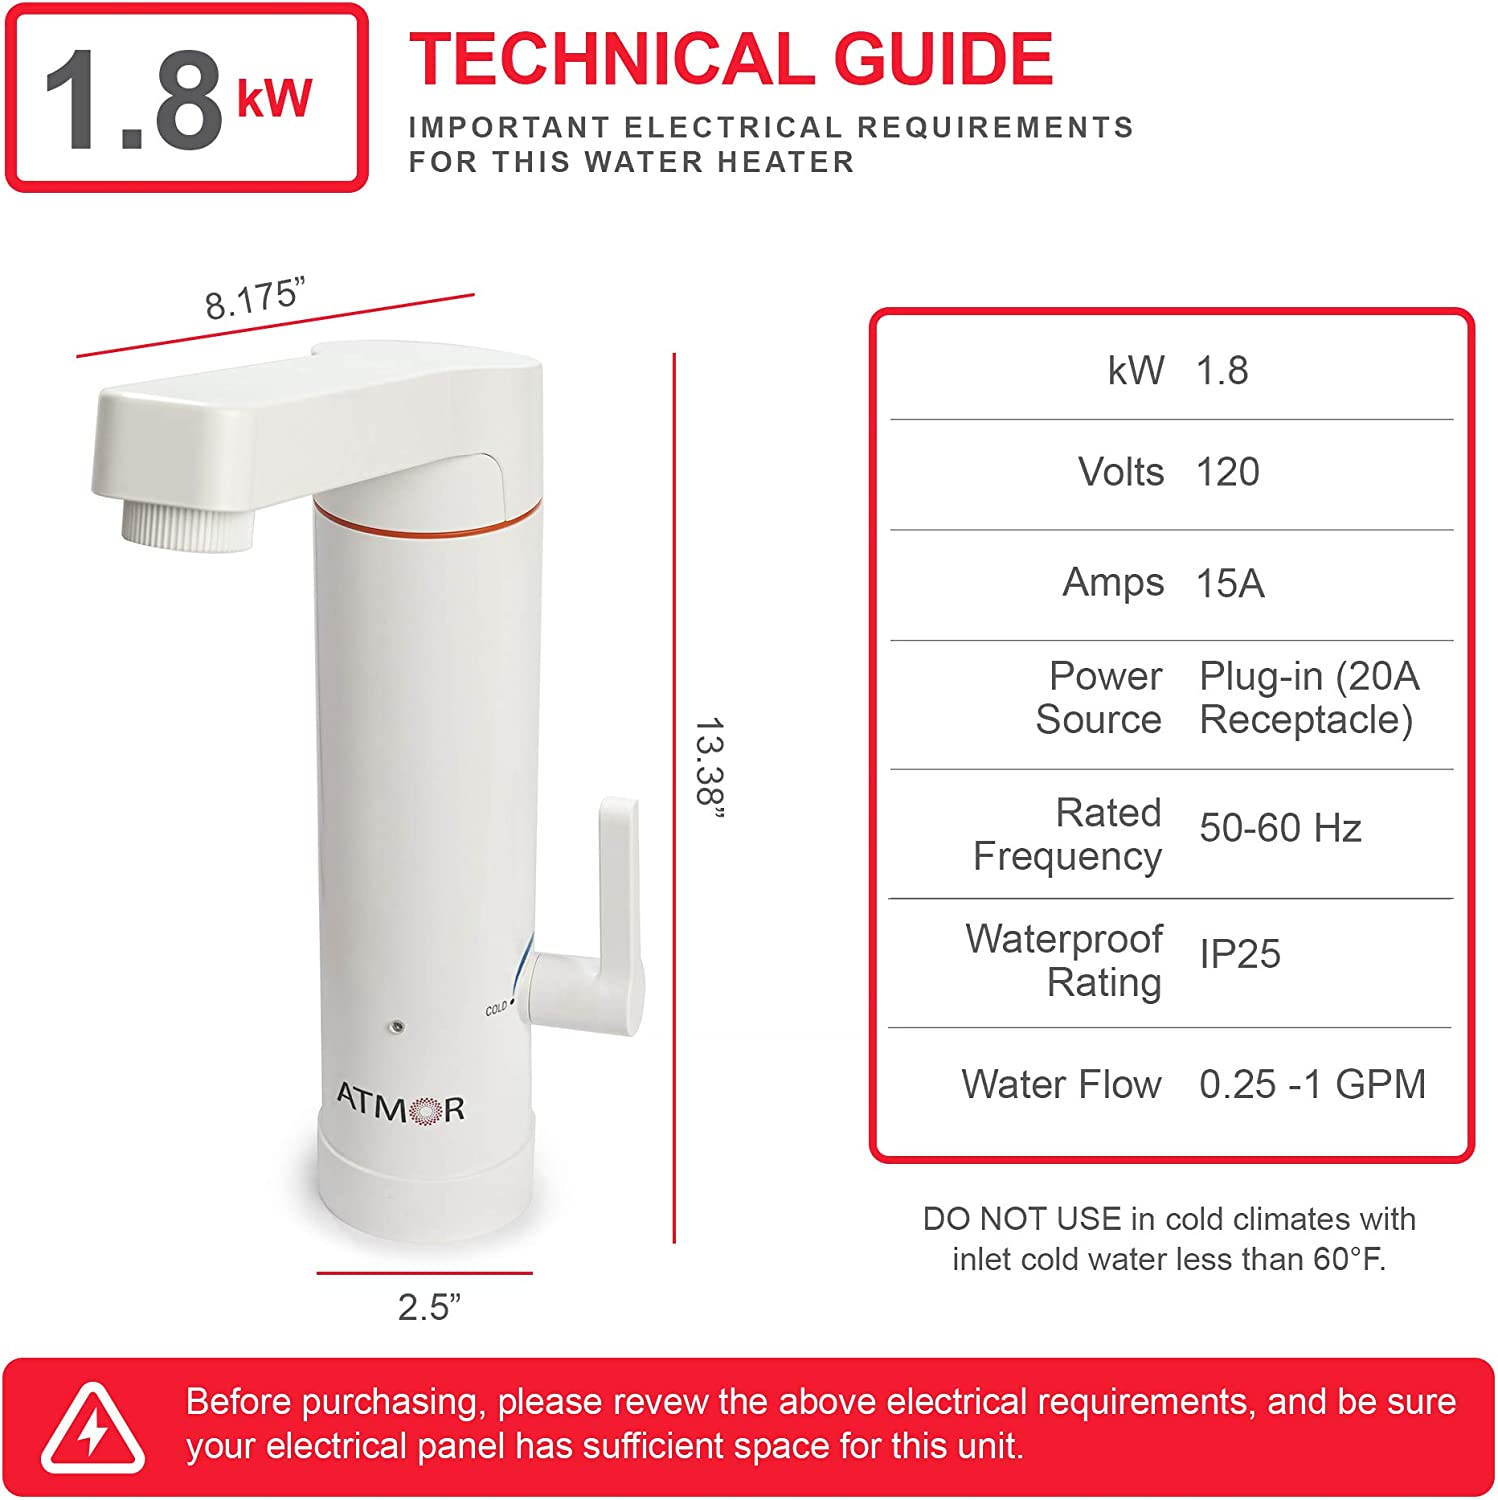 Atmor 1.8kW 2-in-1 Electric Tankless Water Heater//Faucet